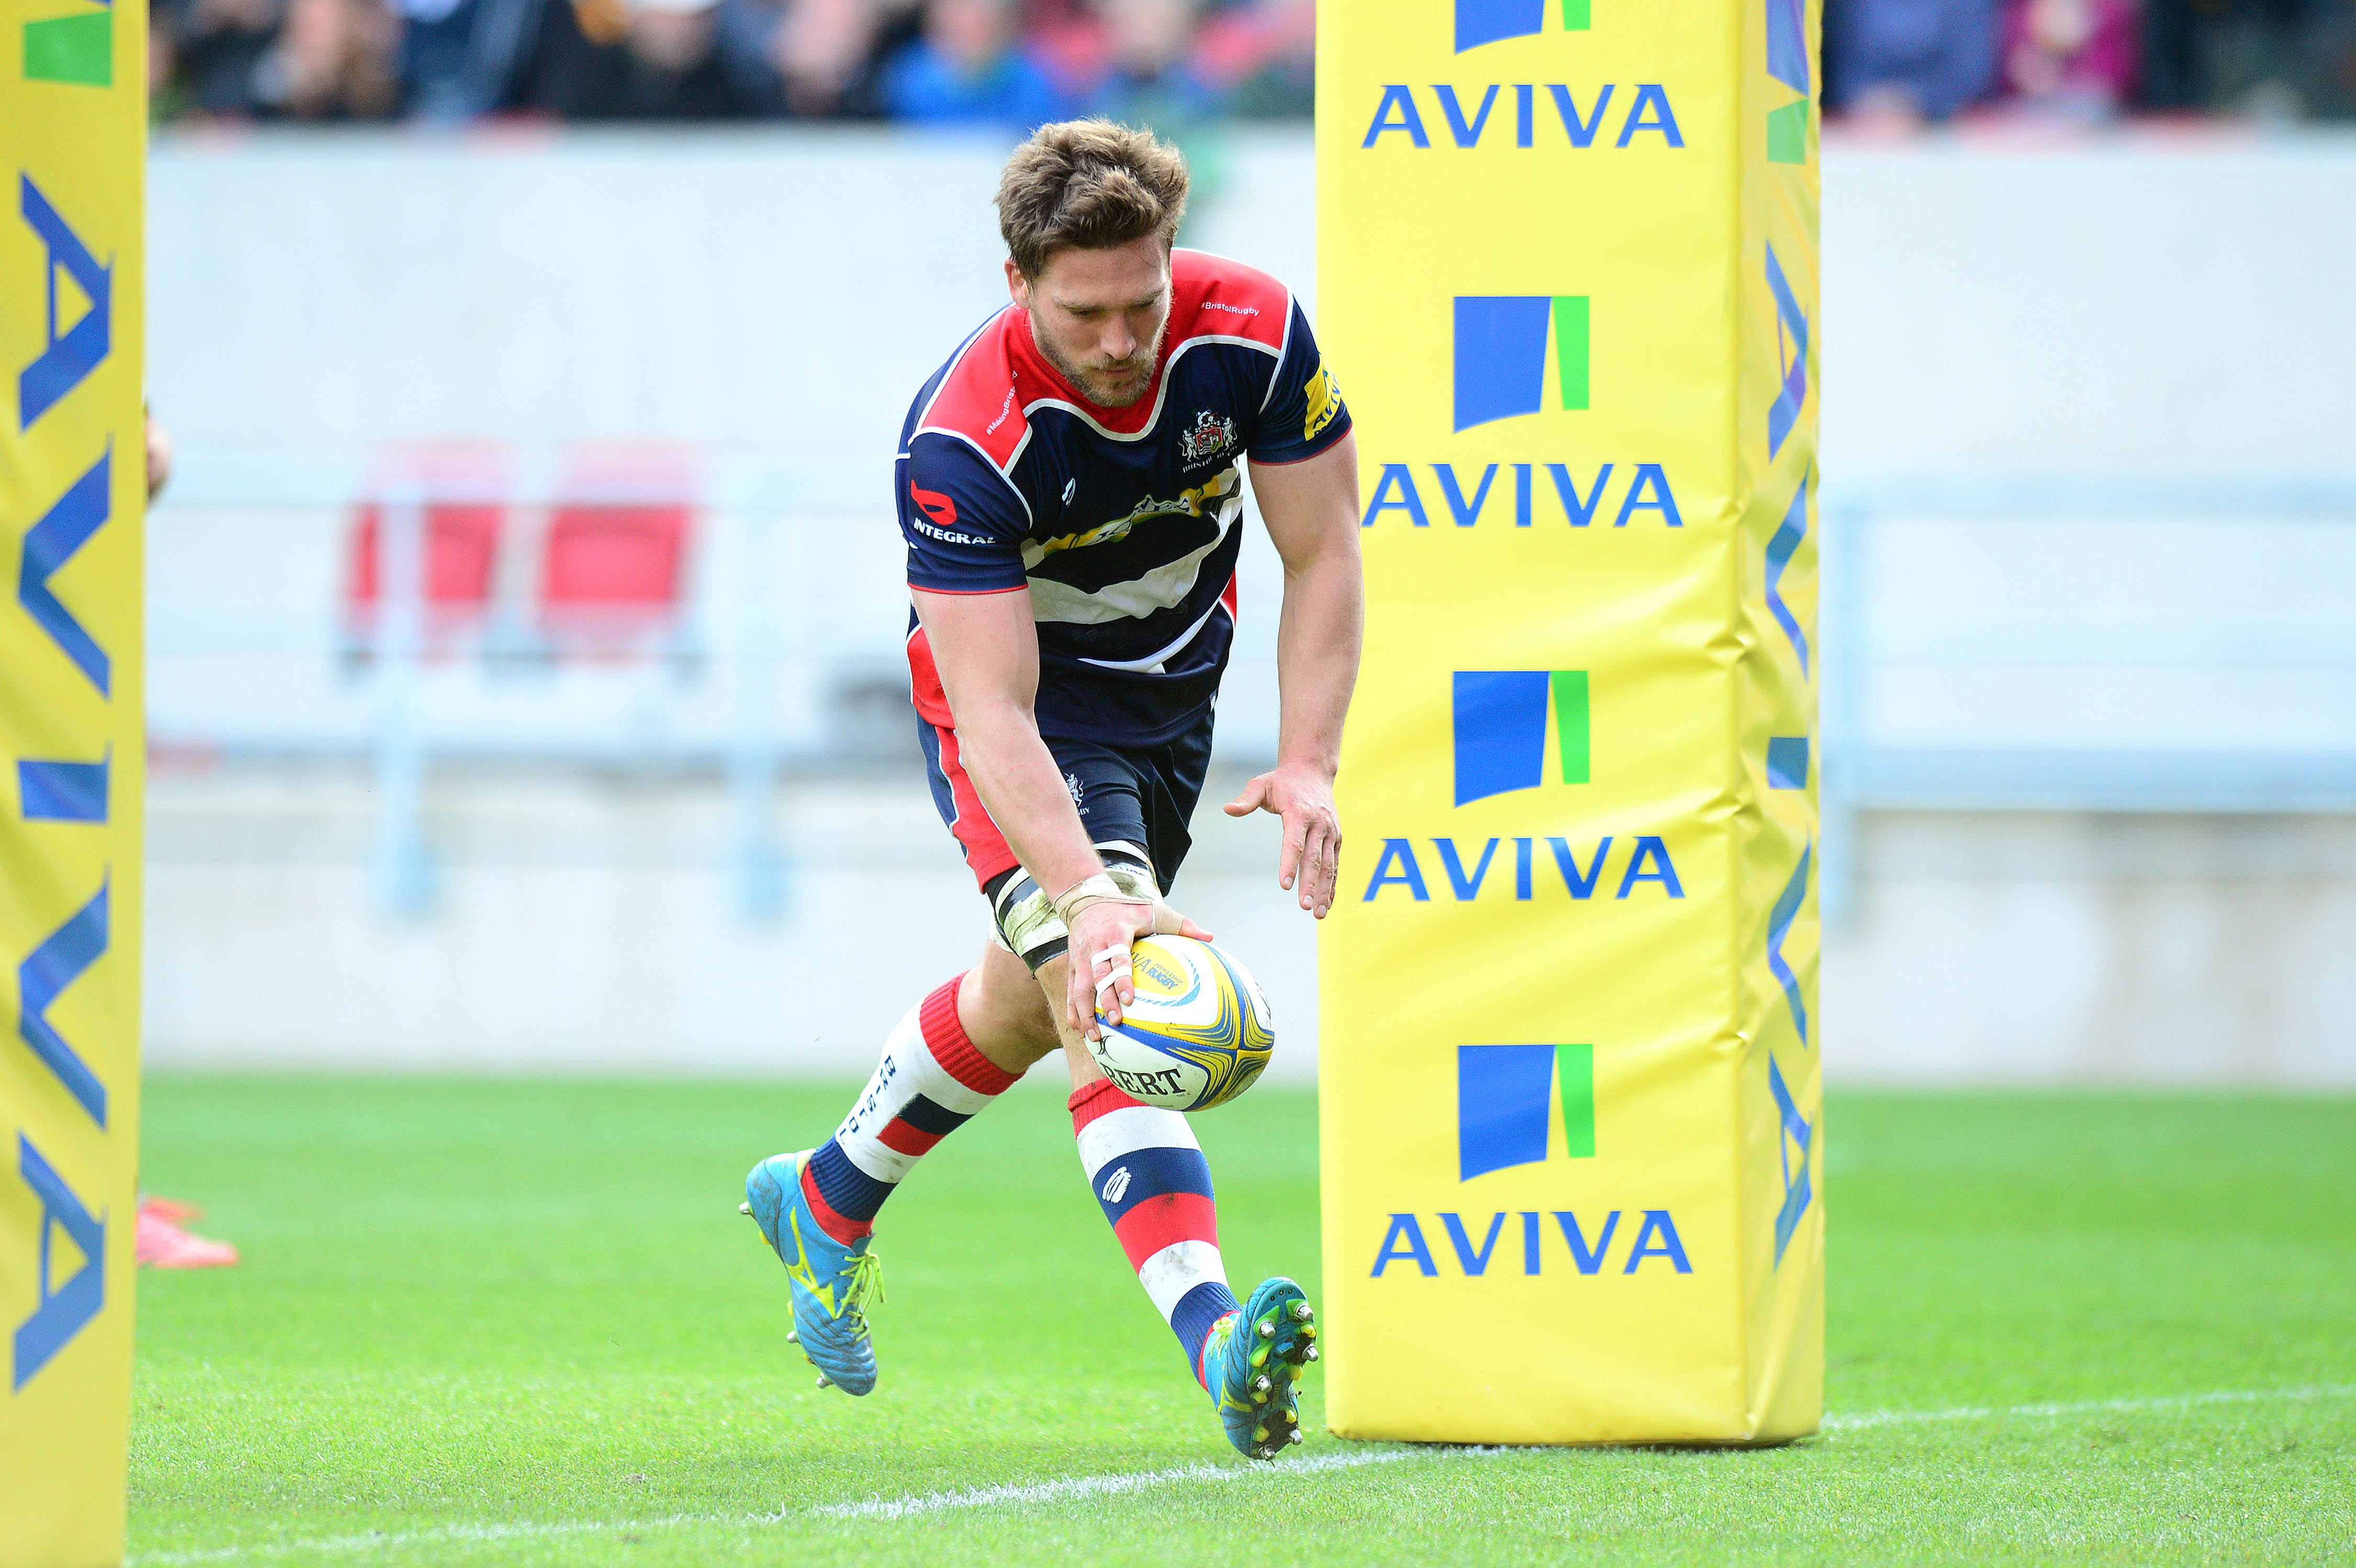 Bristol set to drop out of Aviva Premiership after Wasps defeat